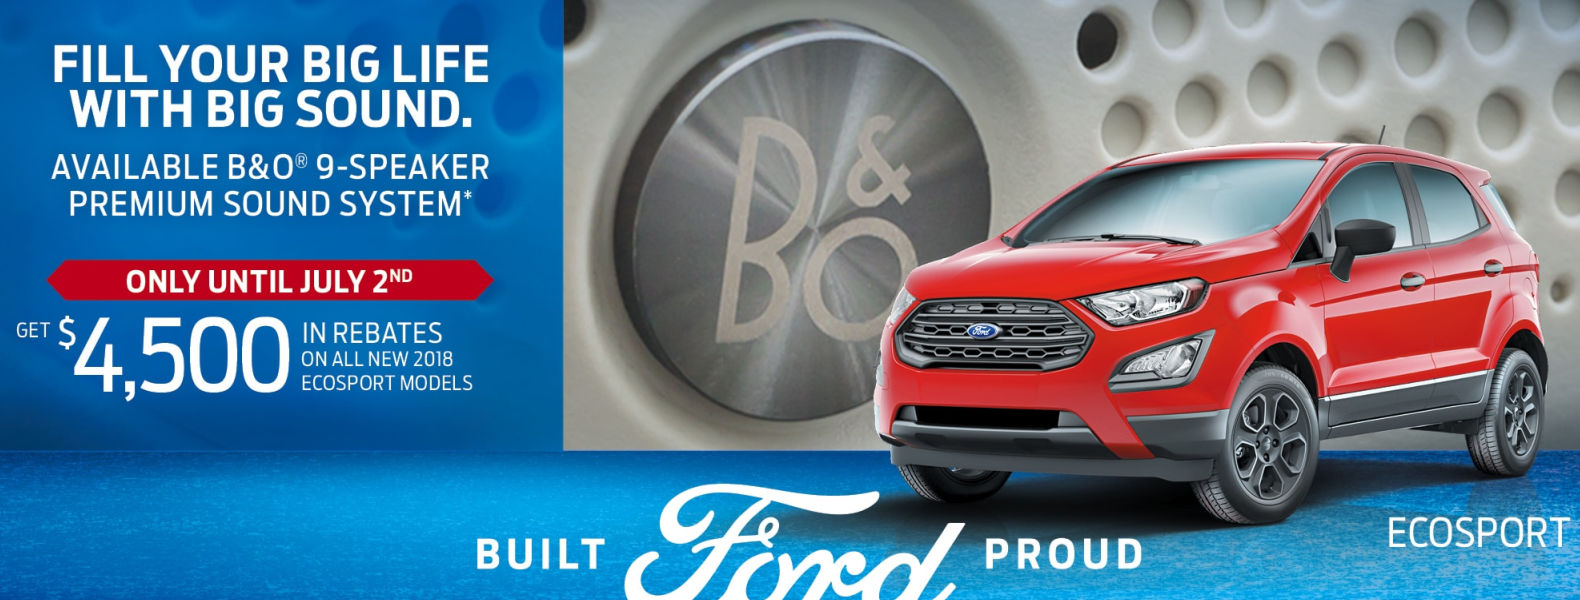 ford ecosport new smiths falls deals